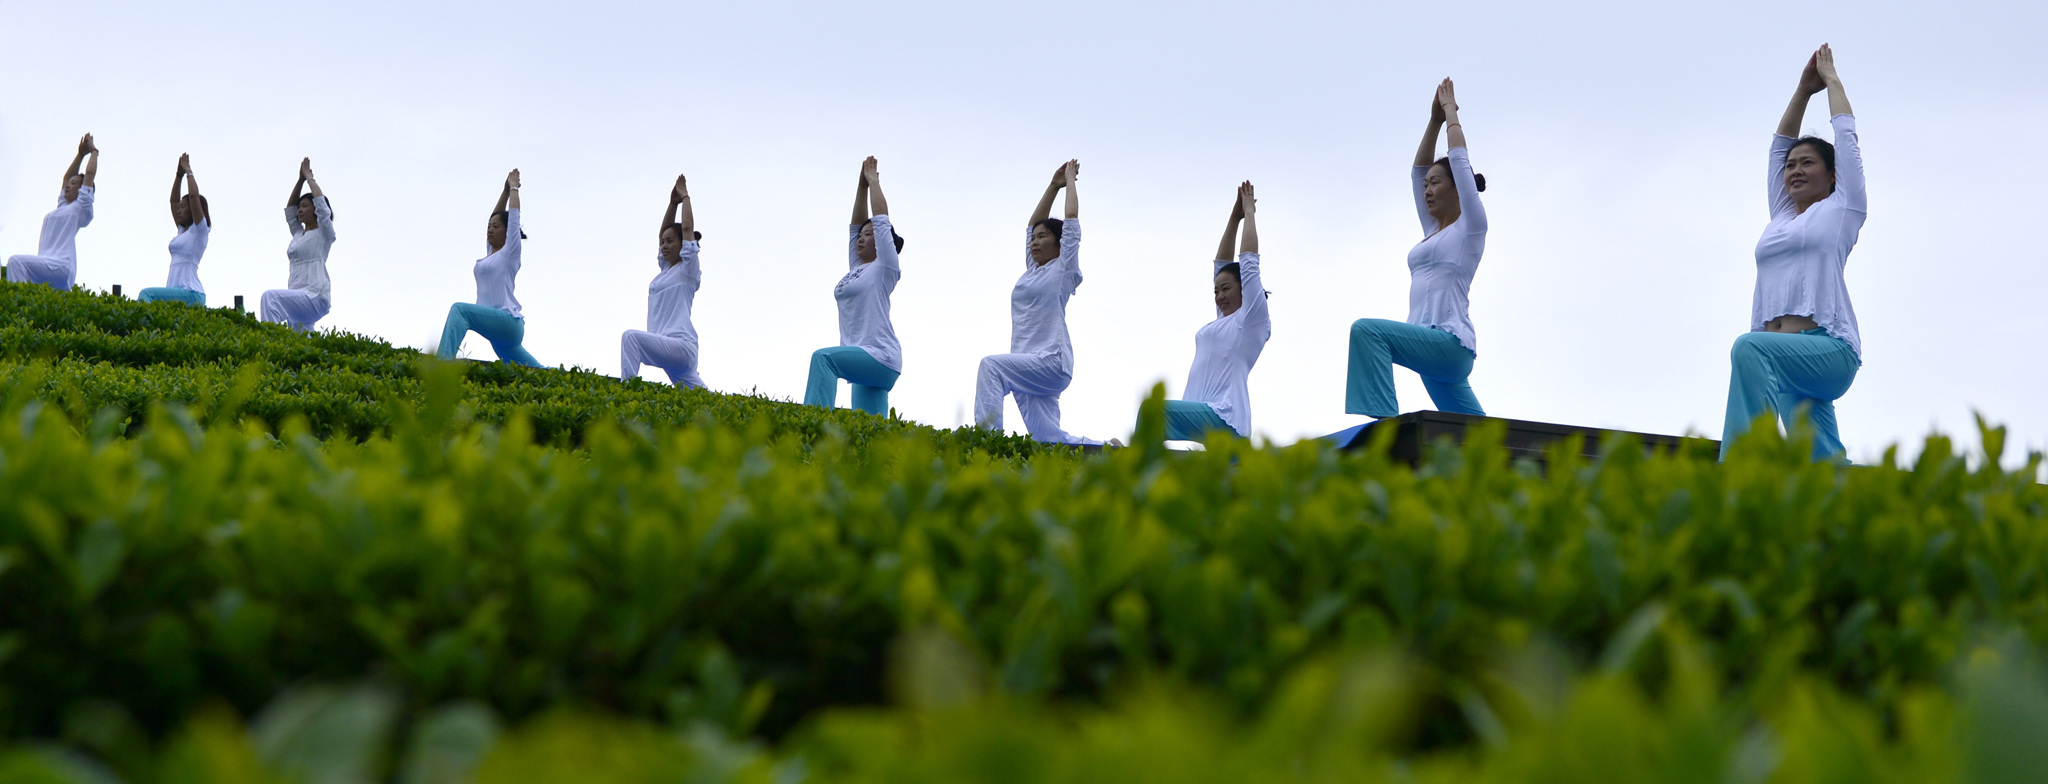 Yoga Performance At Tea Garden In Enshi...ENSHI, CHINA - APRIL 24:  (CHINA OUT) Yoga enthusiasts perform at a tea garden on April 24, 2016 in Enshi Tujia and Miao Autonomous Prefecture, Hubei Province of China.  (Photo by VCG/VCG via Getty Images)